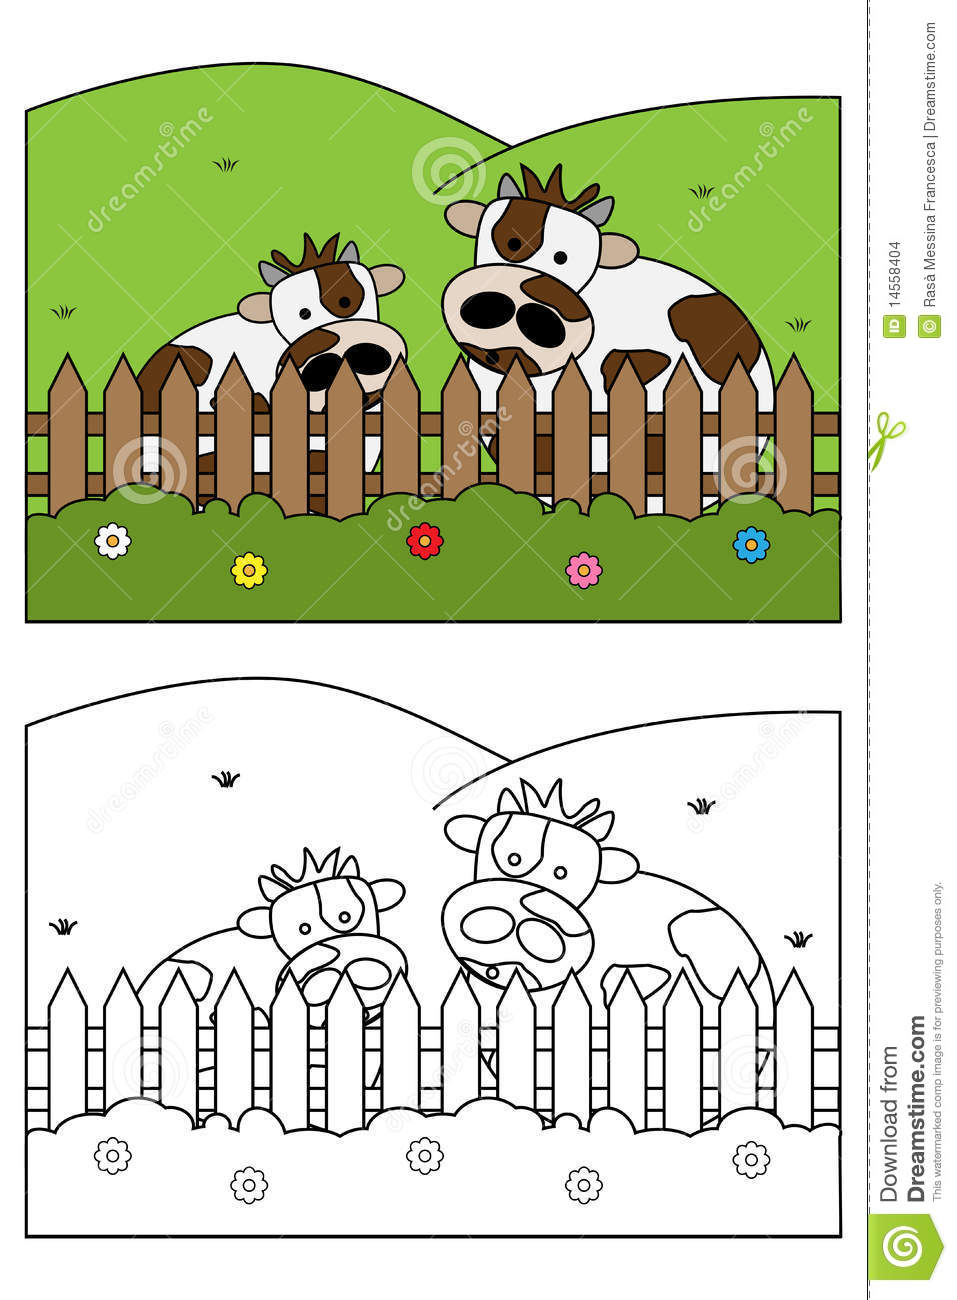 Coloring Page Book For Kids - Cow Stock Vector - Illustration of ...